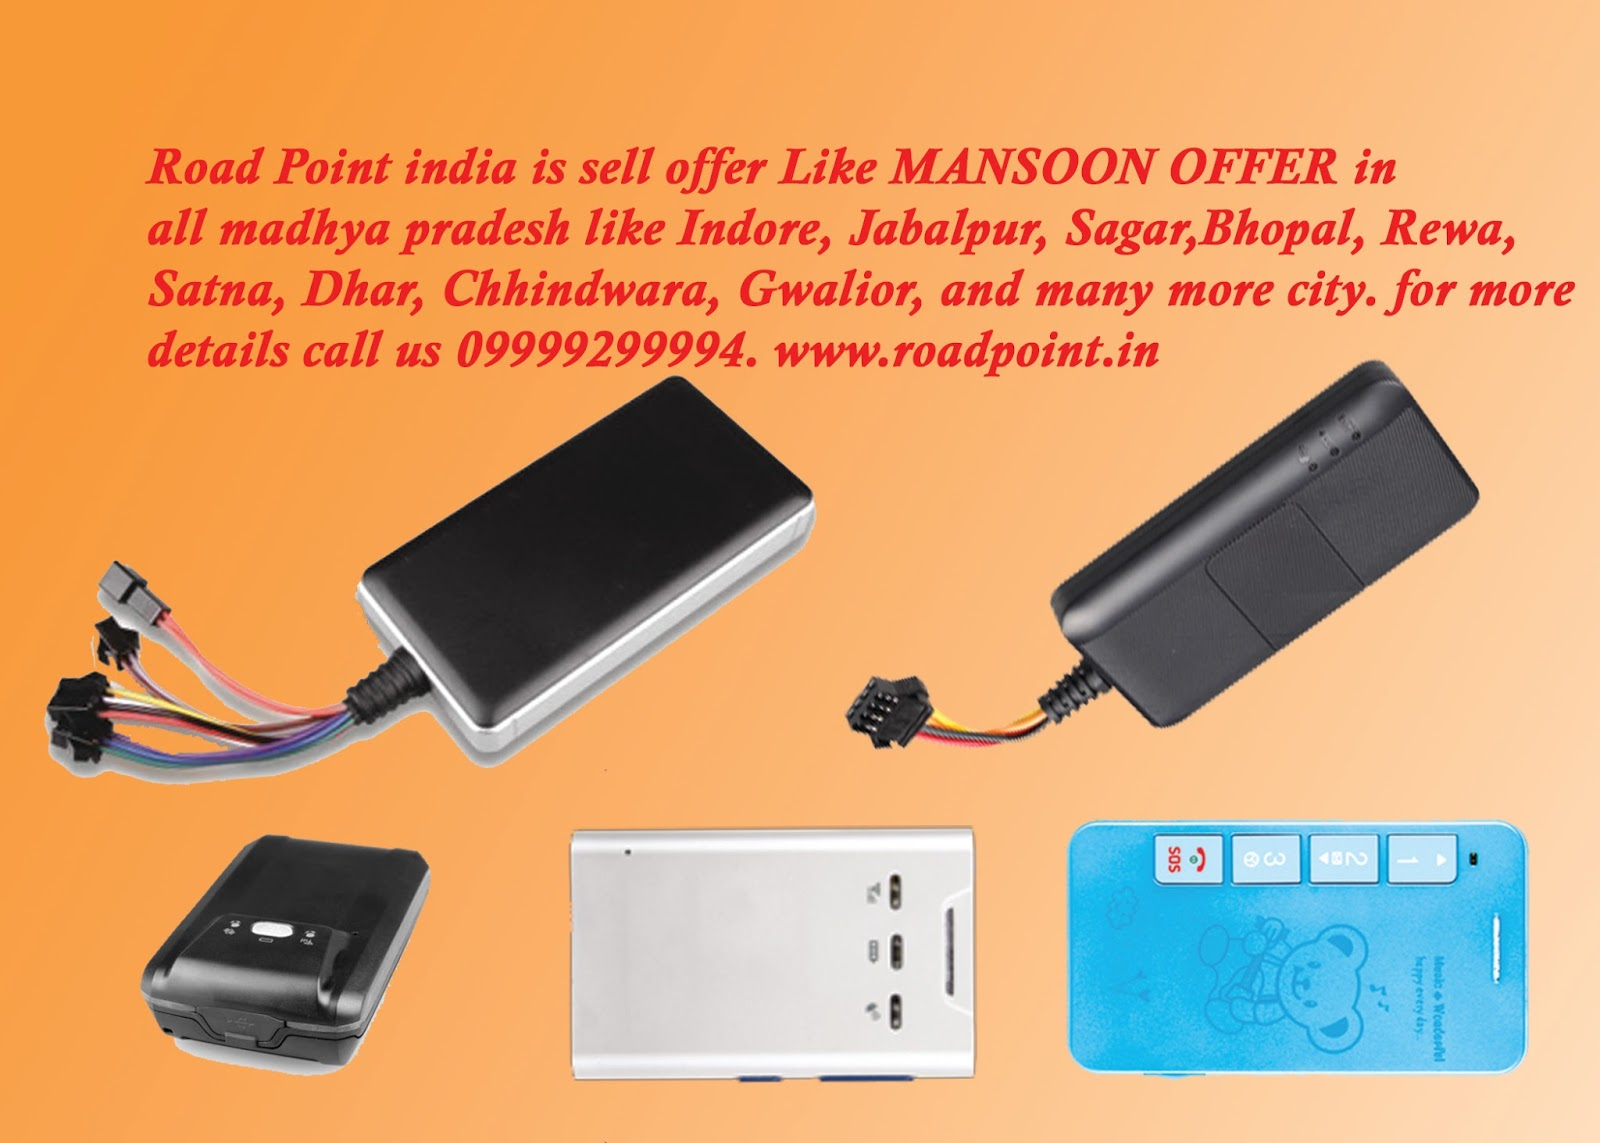 call us 09999299994 the road point india provide gps gsm based vehicle tracking system devices allows you to track your pc and mobile assets with google